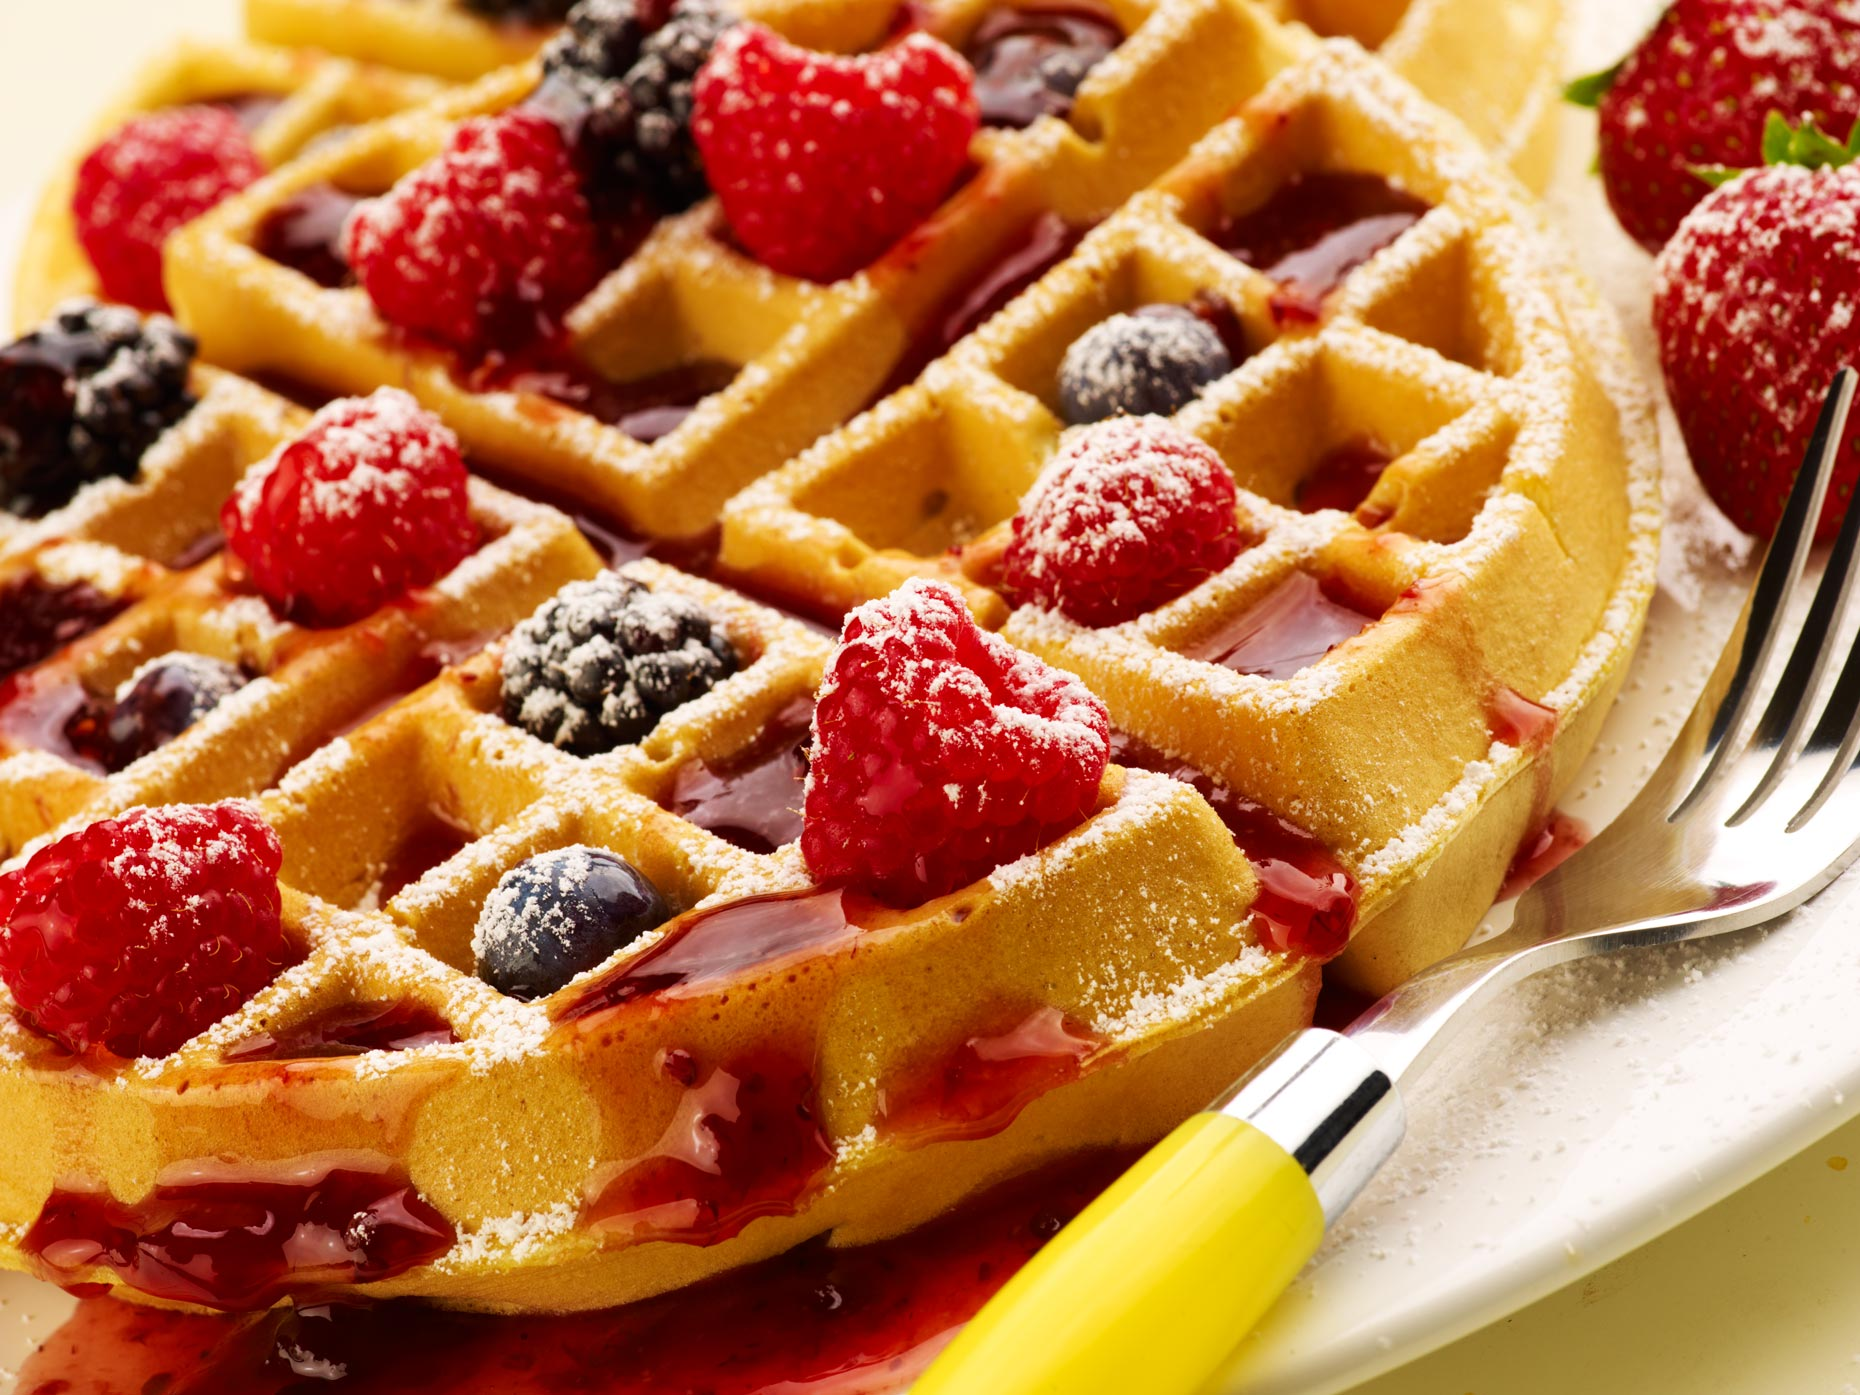 Waffles with berries | Food Photography